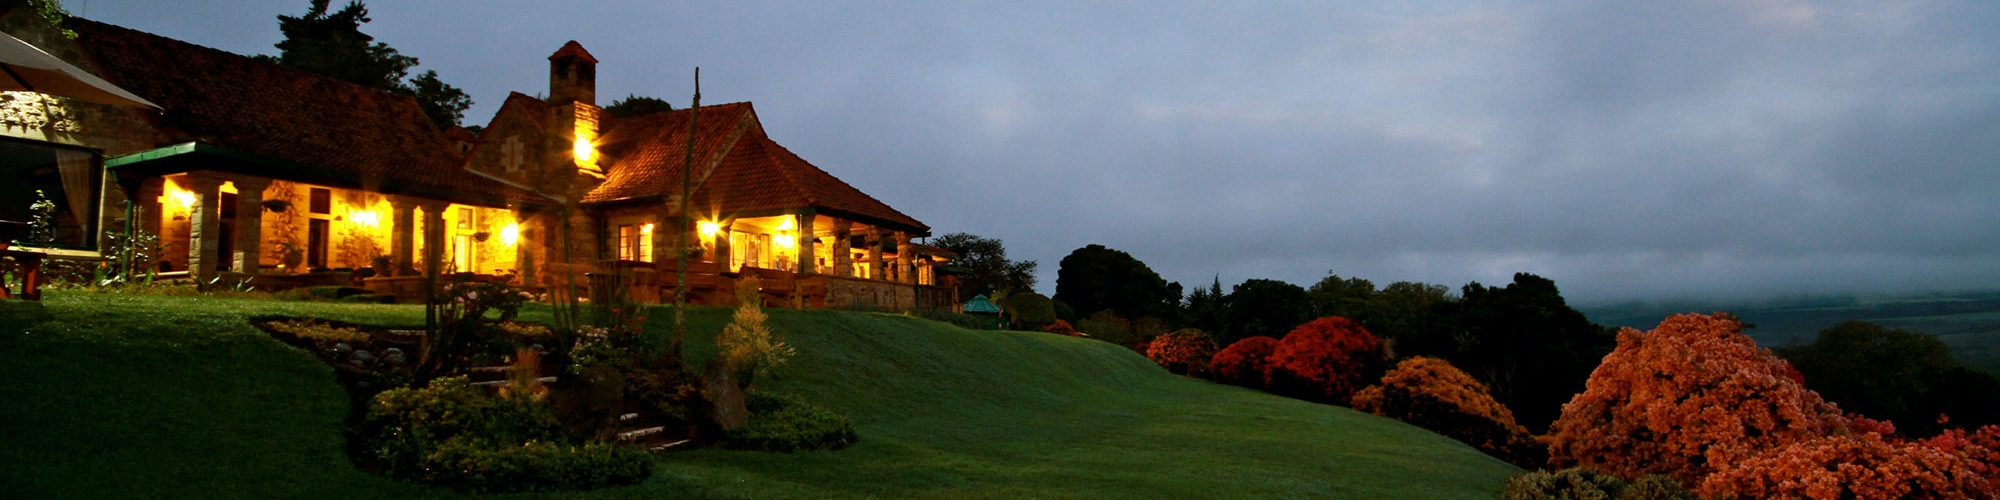 Aberdare Country Club - Kenya